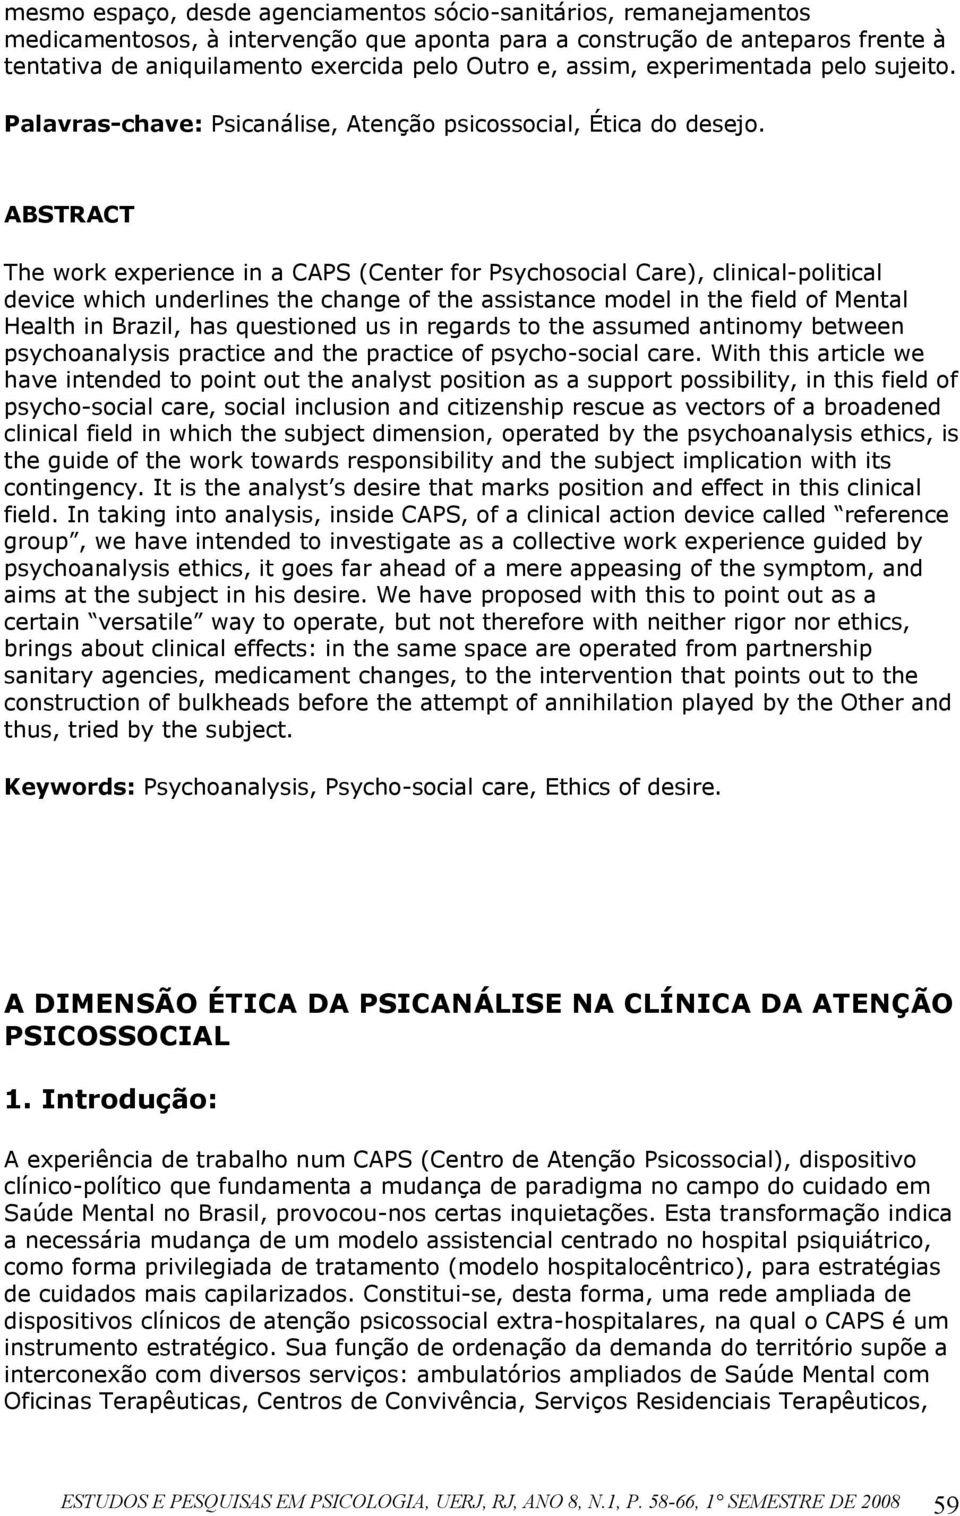 ABSTRACT The work experience in a CAPS (Center for Psychosocial Care), clinical-political device which underlines the change of the assistance model in the field of Mental Health in Brazil, has